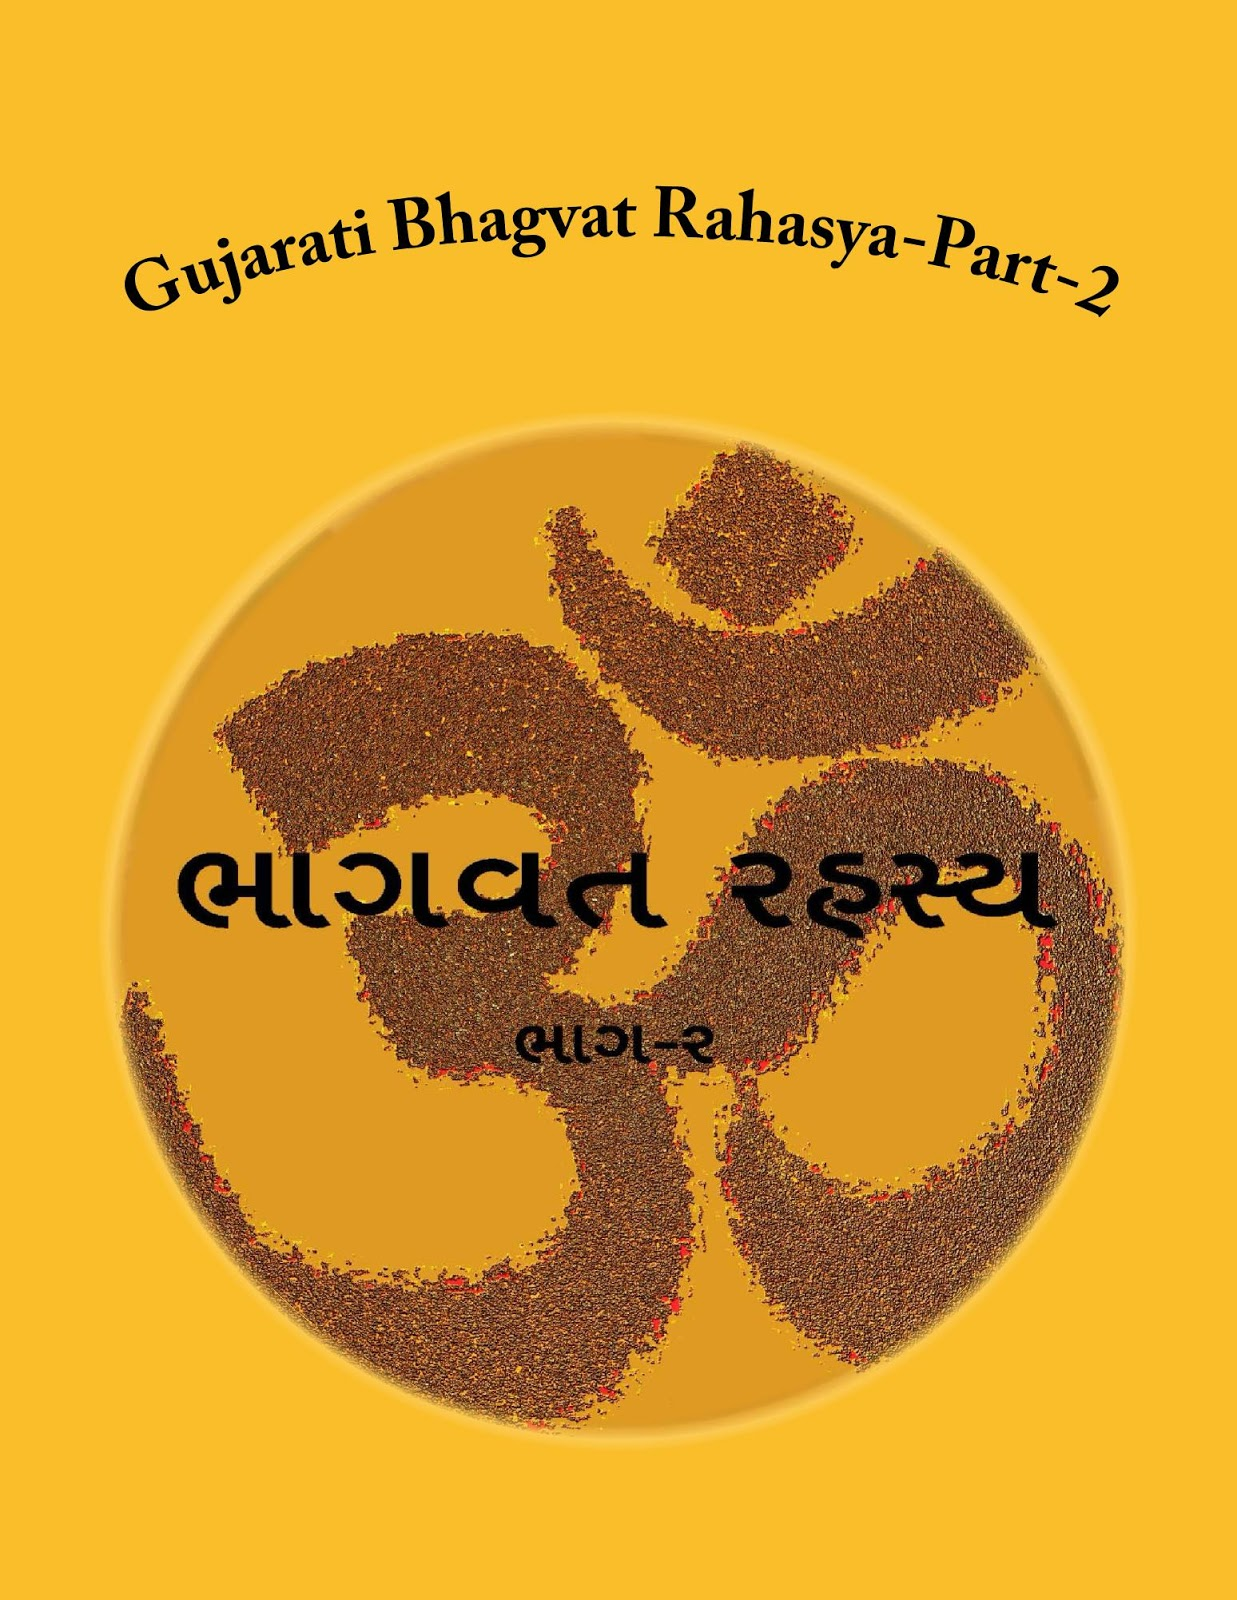 Gujarati_Bhagvat_Rah_Cover_part-2.jpg